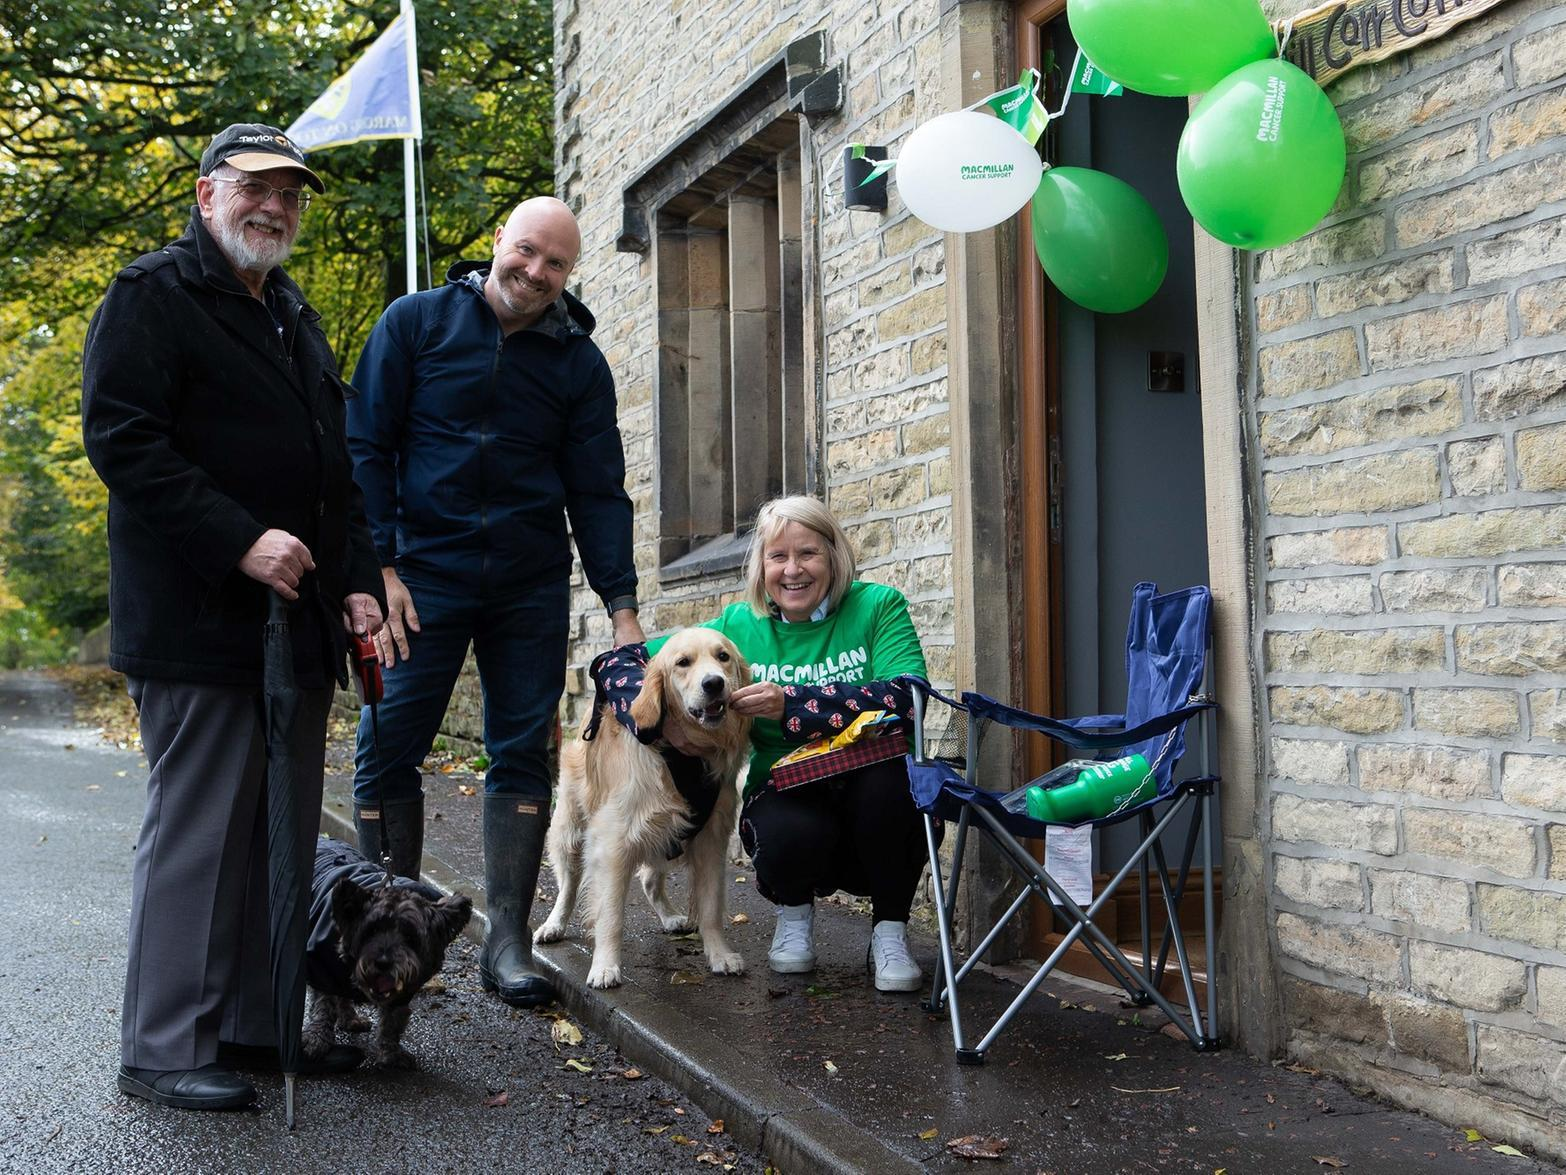 Calderdale woman's fighting cancer with canines and hot coffee